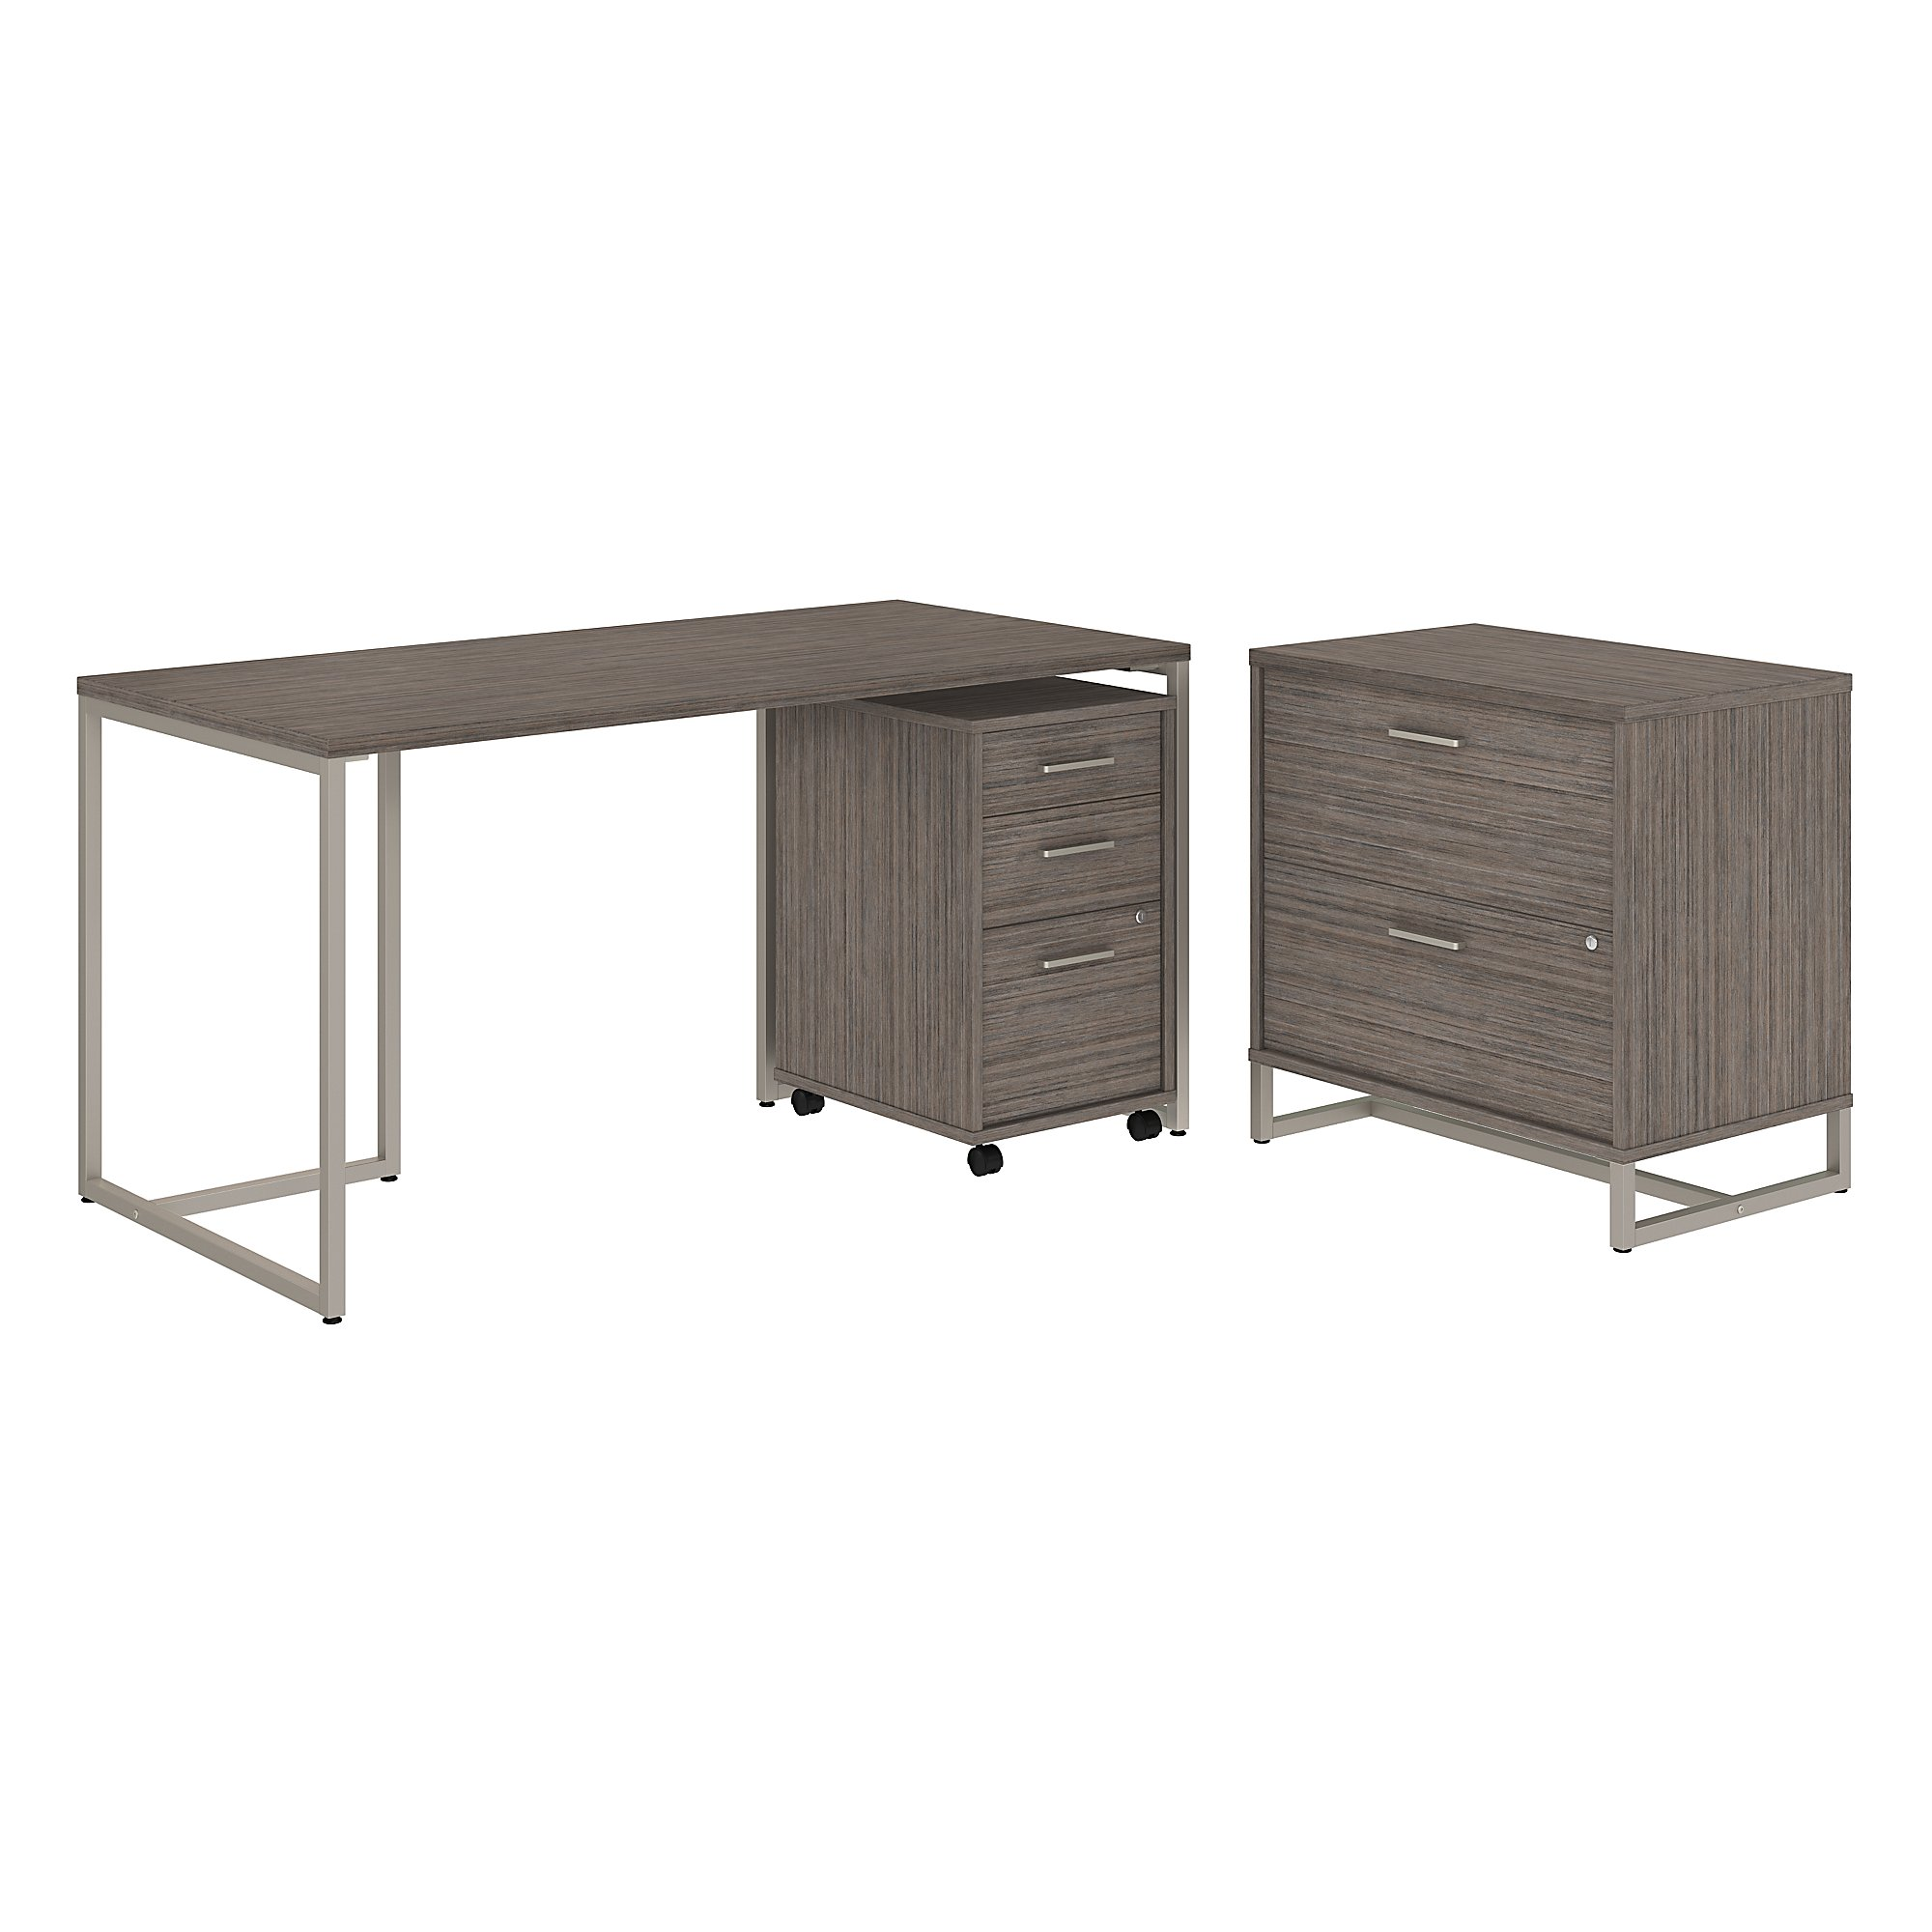 method writing desk with file cabinets in cocoa